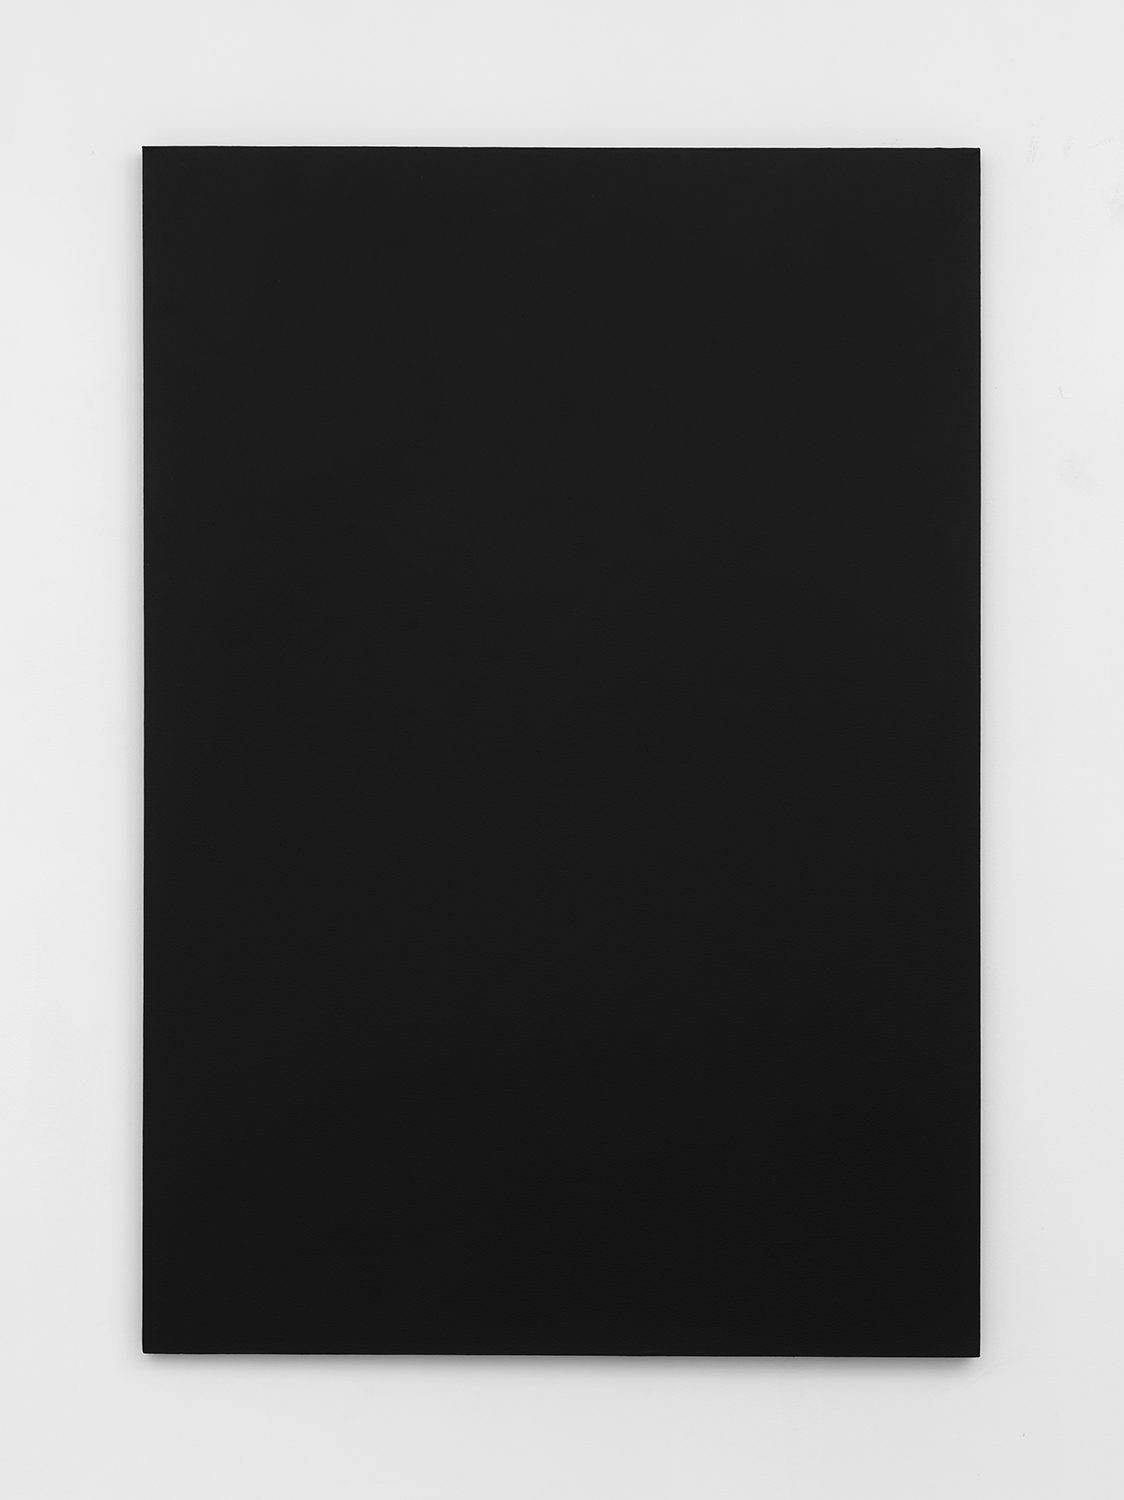 Joshua Evan,  Shielding Monochrome #1 , EMF shielding paint on canvas, 2017, courtesy ASHES/ASHES